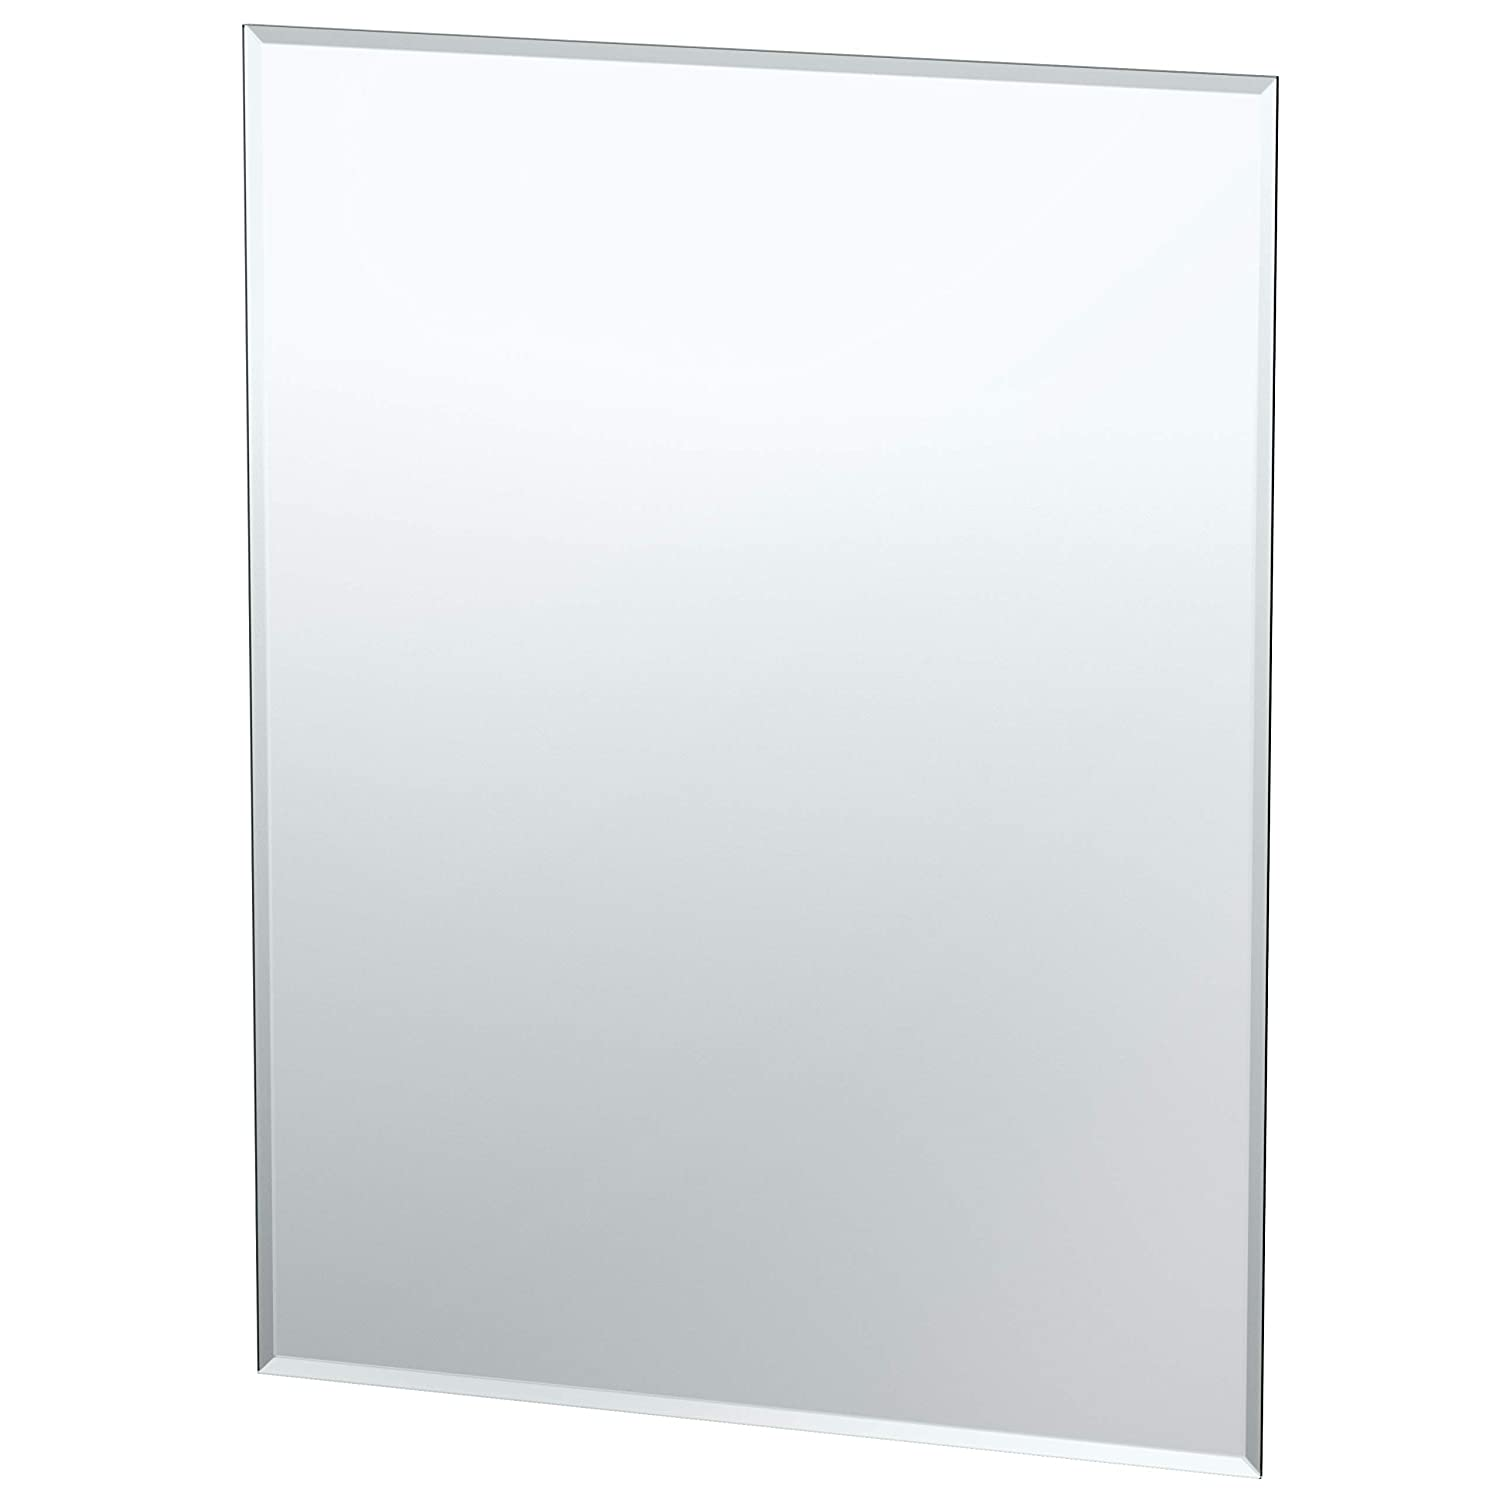 Gatco 1803 Flush Mount Rectangle Frameless Regular Mirror, 24-inch